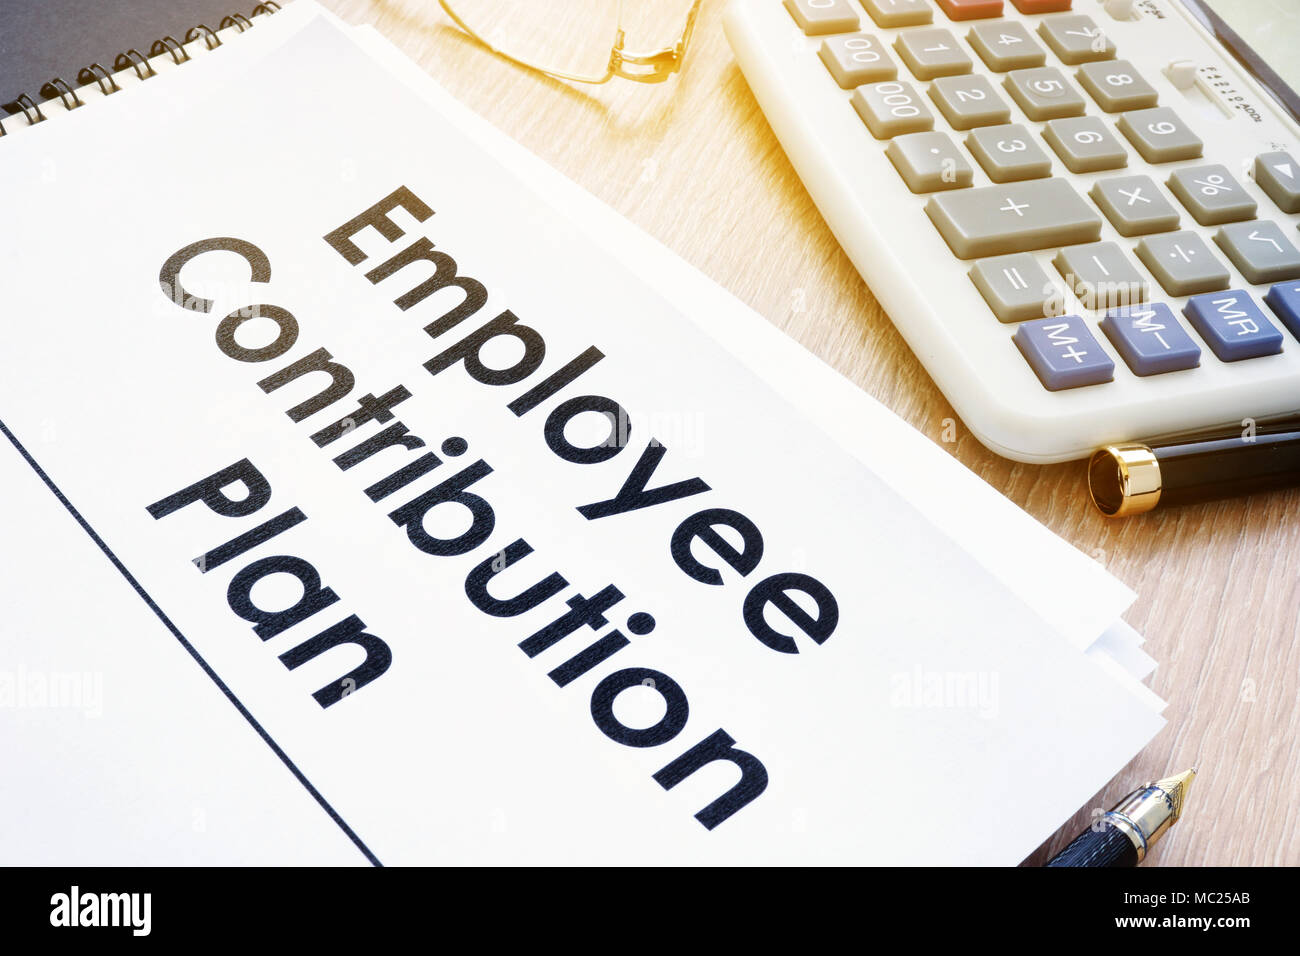 Documents with title Employee Contribution Plan on a desk. - Stock Image